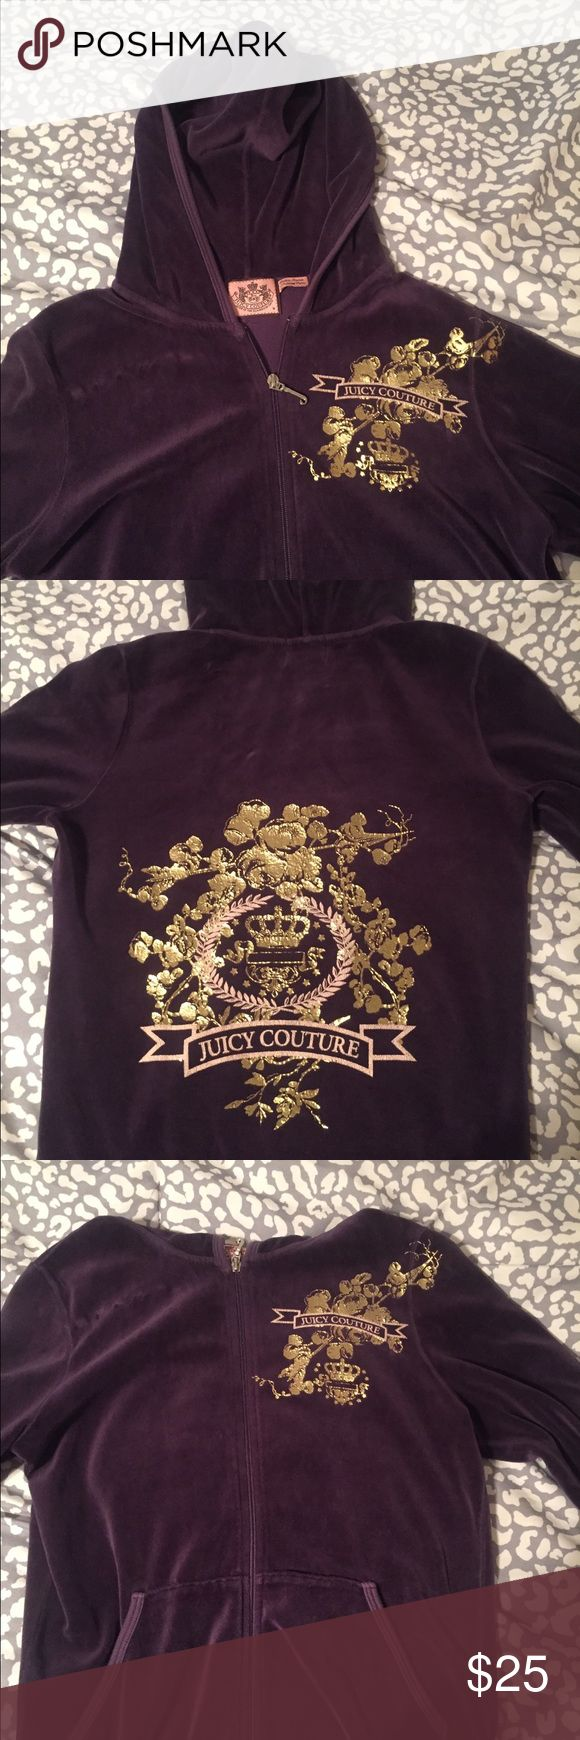 Juicy Couture purple zip up Classic purple zip up hoodie from Juicy Couture. Size M but fits like a small. Very gently worn.  Price is not firm, I am accepting different offers! Juicy Couture Tops Sweatshirts & Hoodies